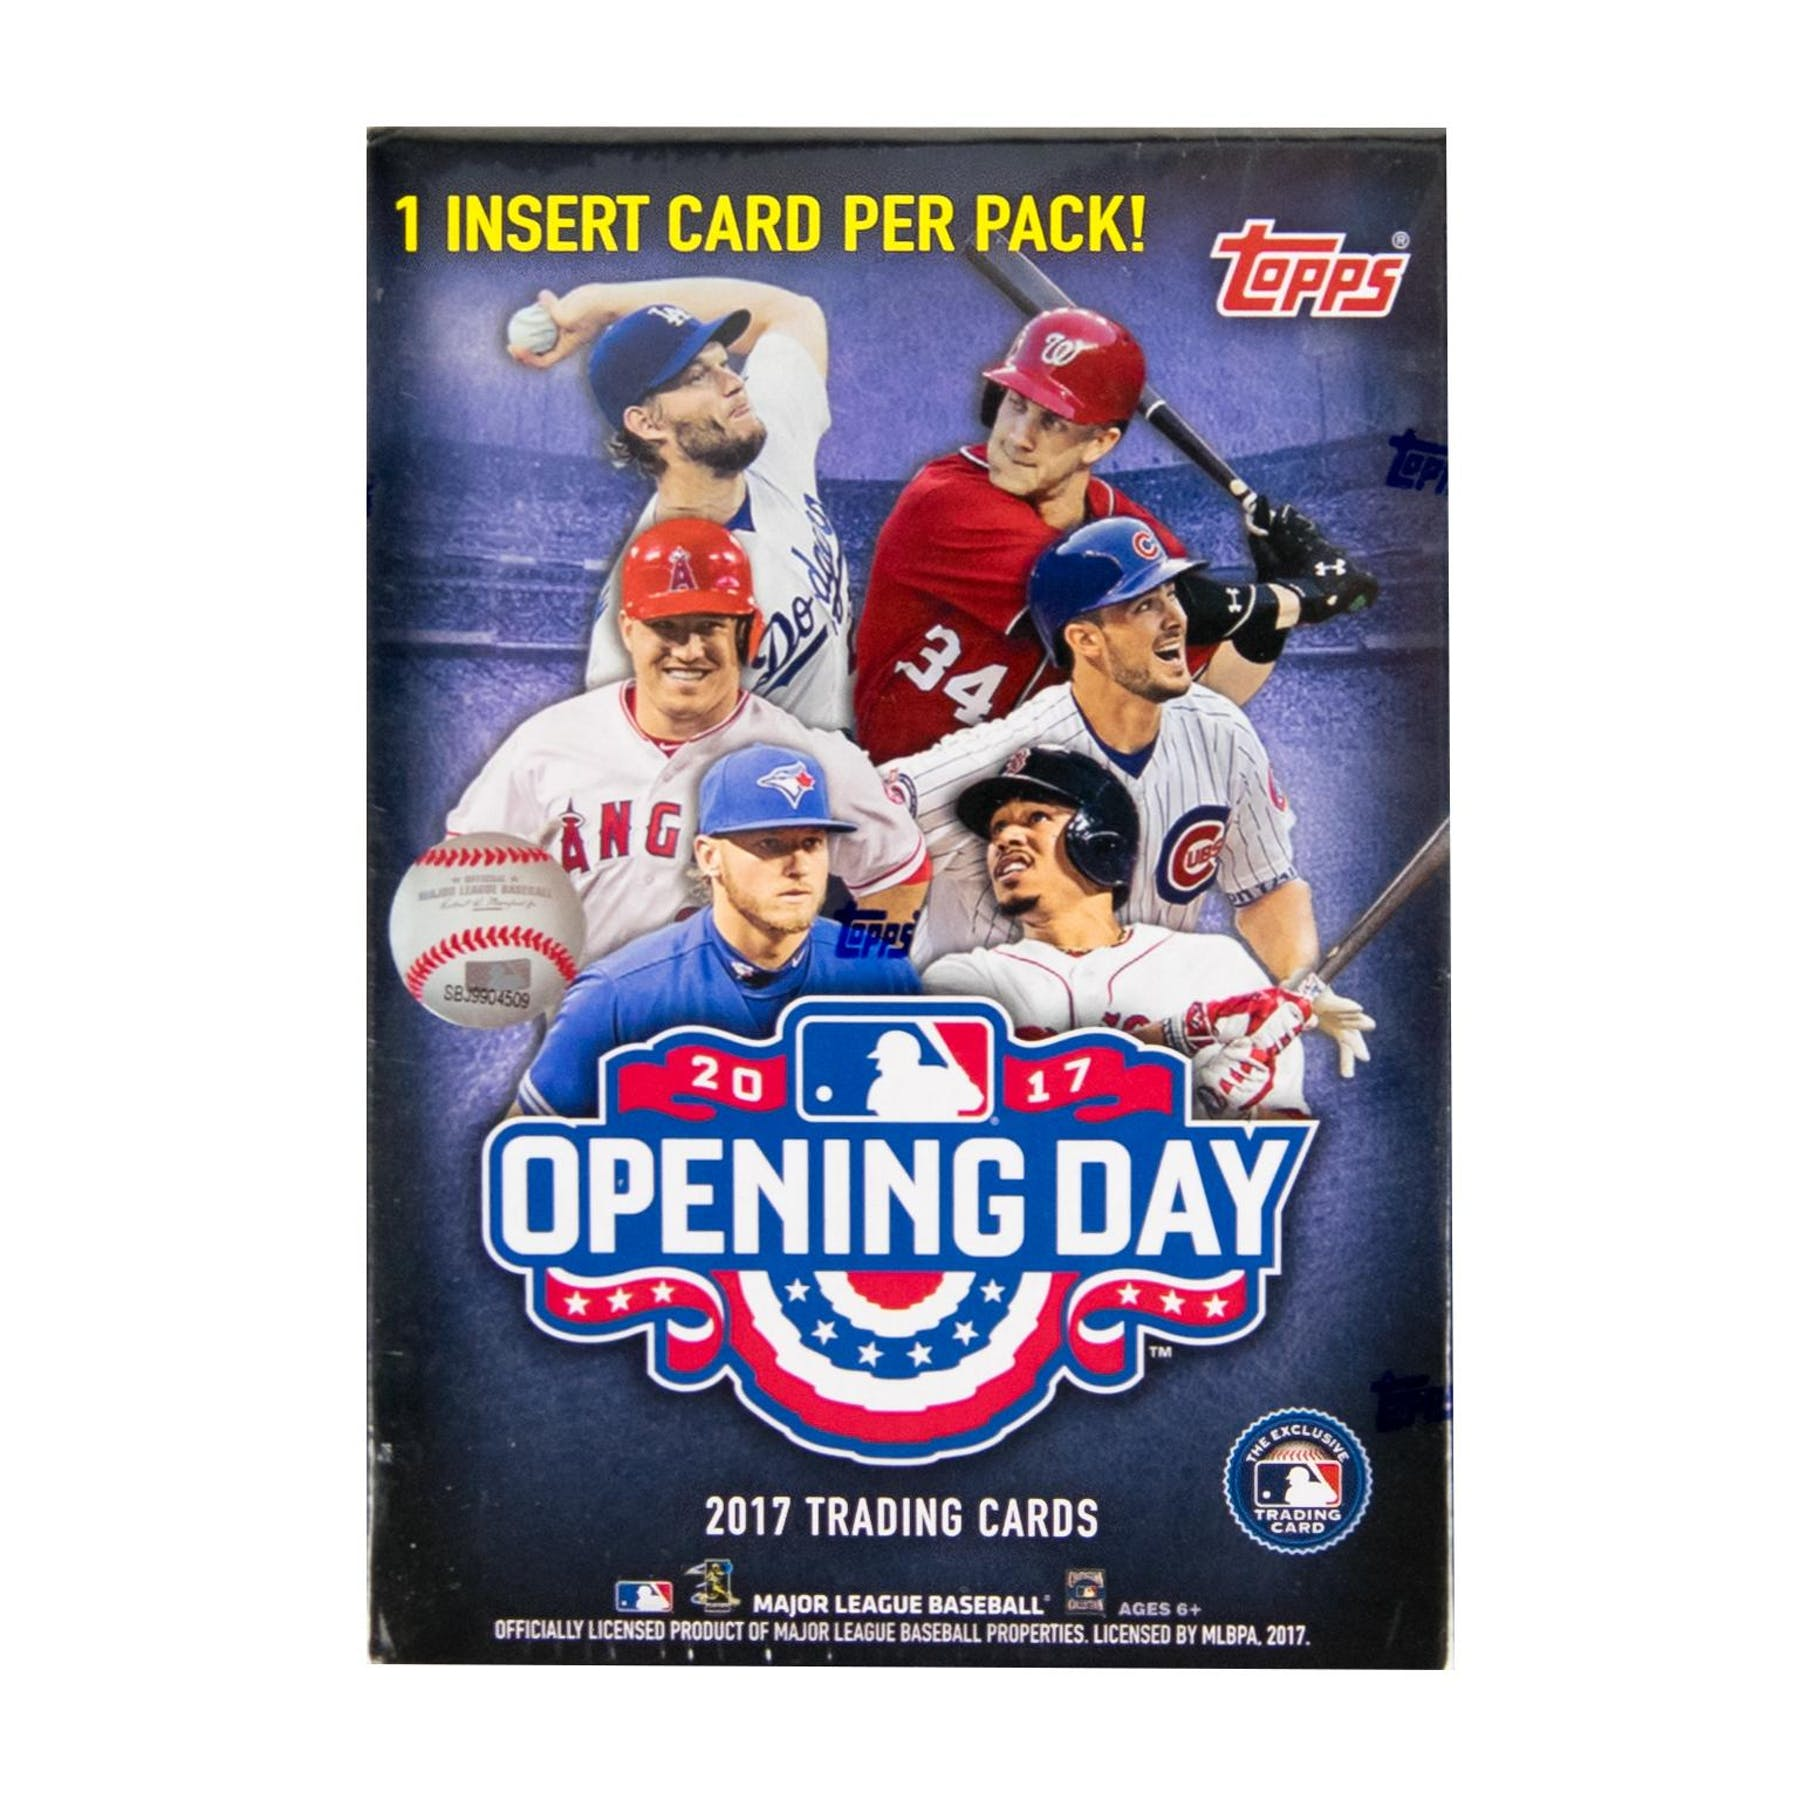 Some Opening Day Baseball Fun From Ace Of: 2017 Topps Opening Day Baseball 11-Pack Box